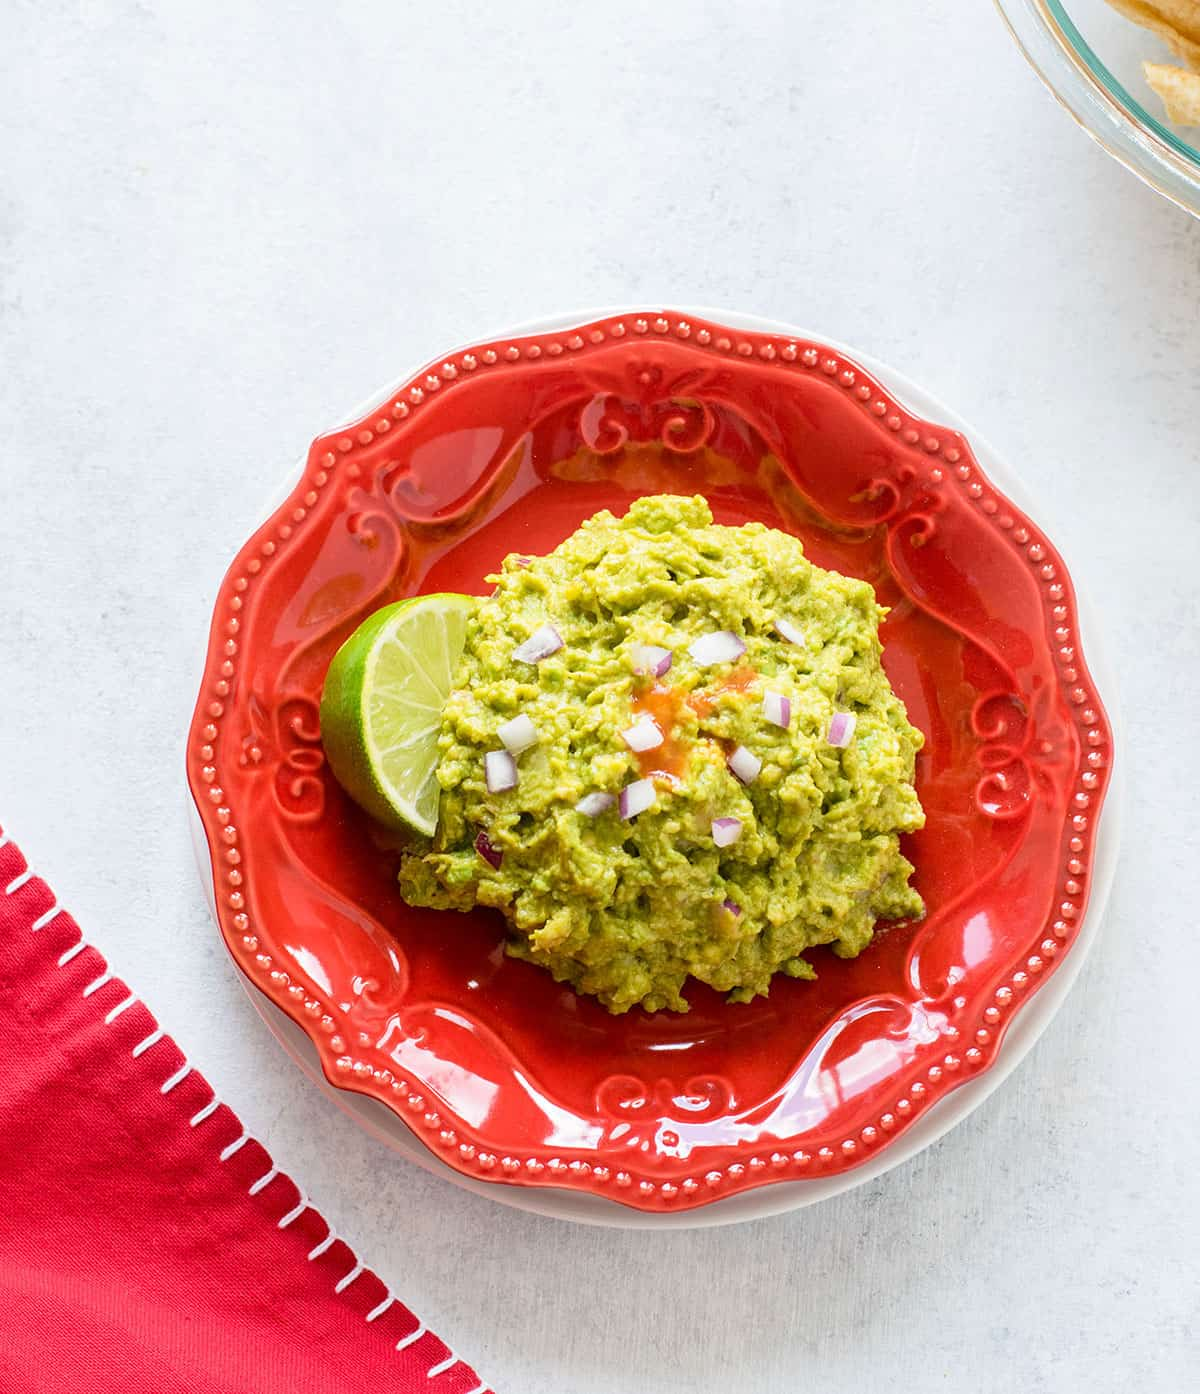 guacamole with lime on red plate